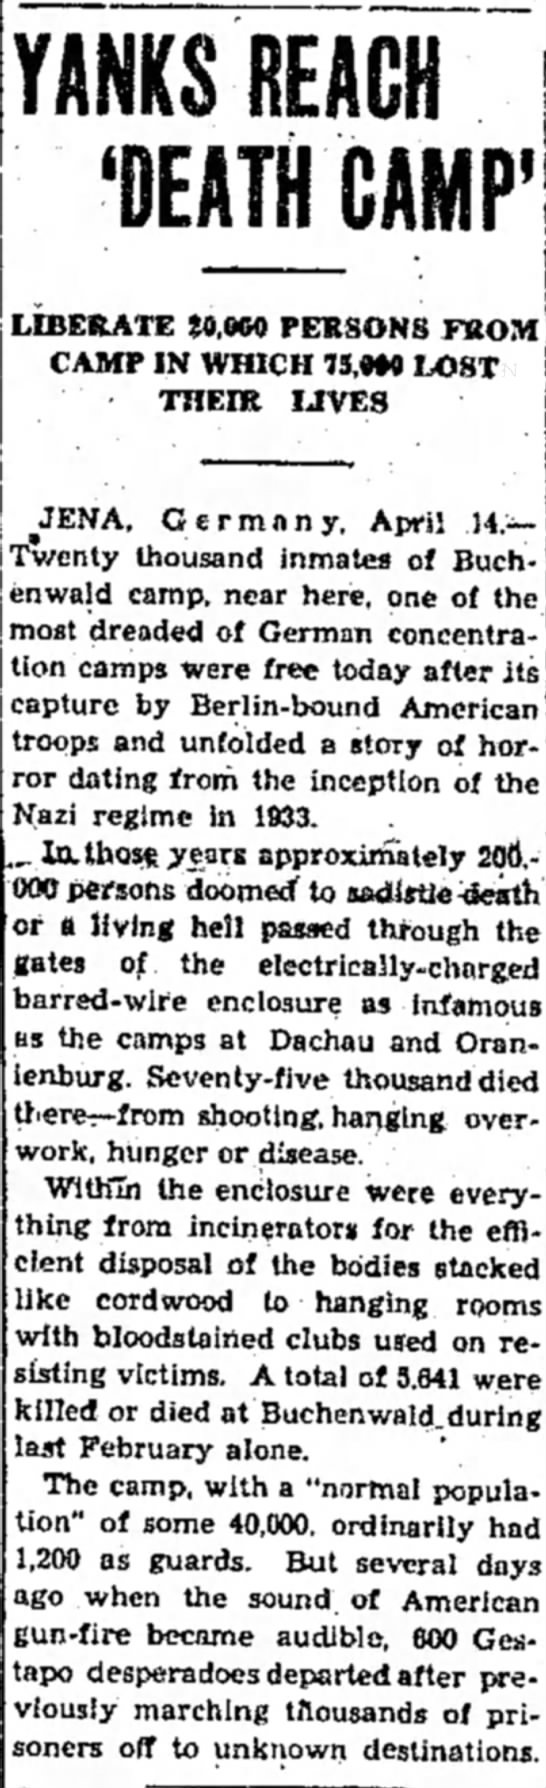 U.S. Soldiers liberate Buchenwald Concentration Camp near Weimar, Germany